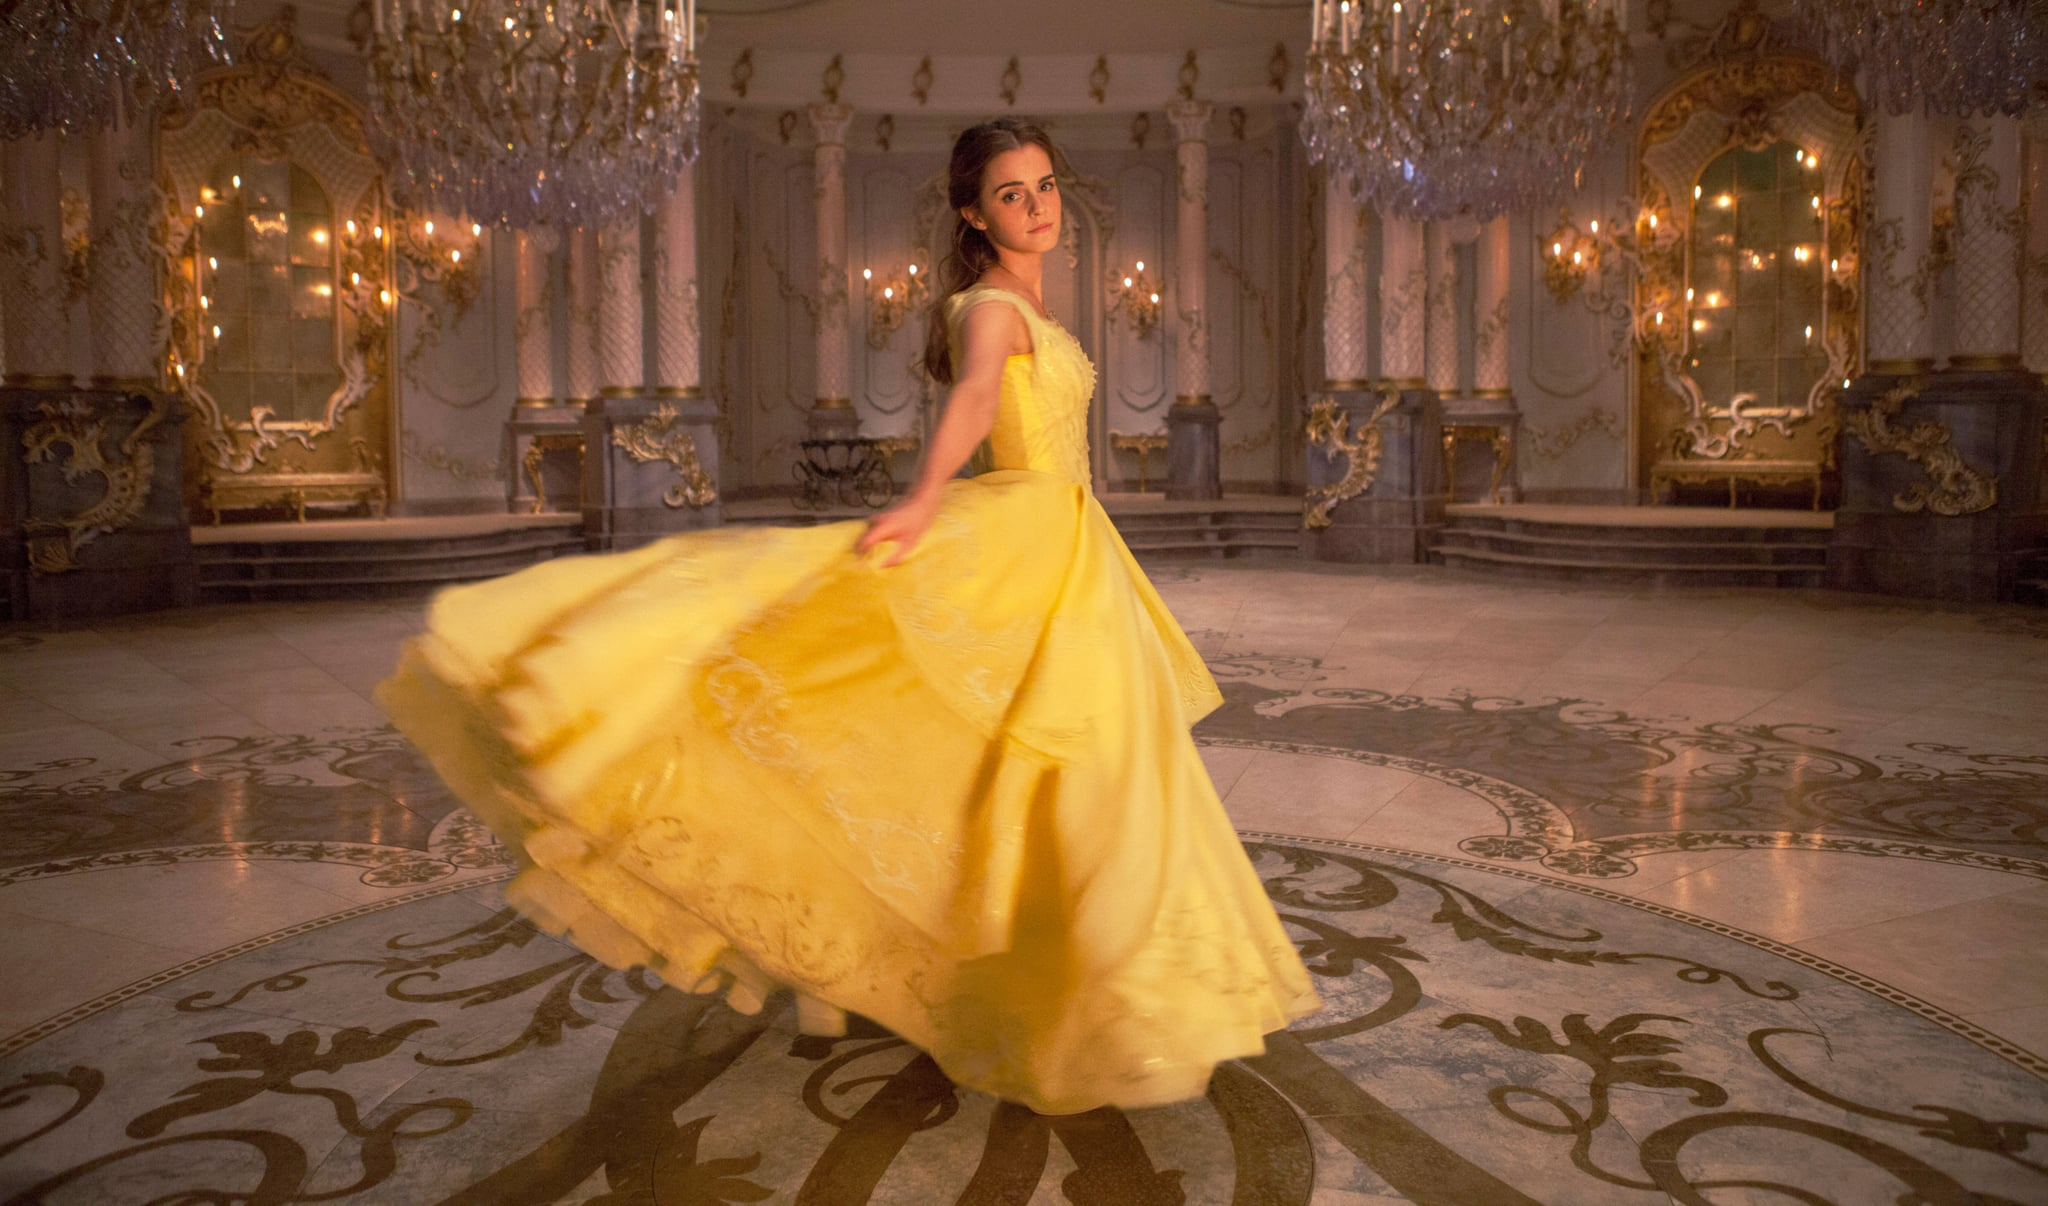 BEAUTY AND THE BEAST, Emma Watson, 2017. ph: Laurie Sparham / Walt Disney Pictures /courtesy Everett Collection